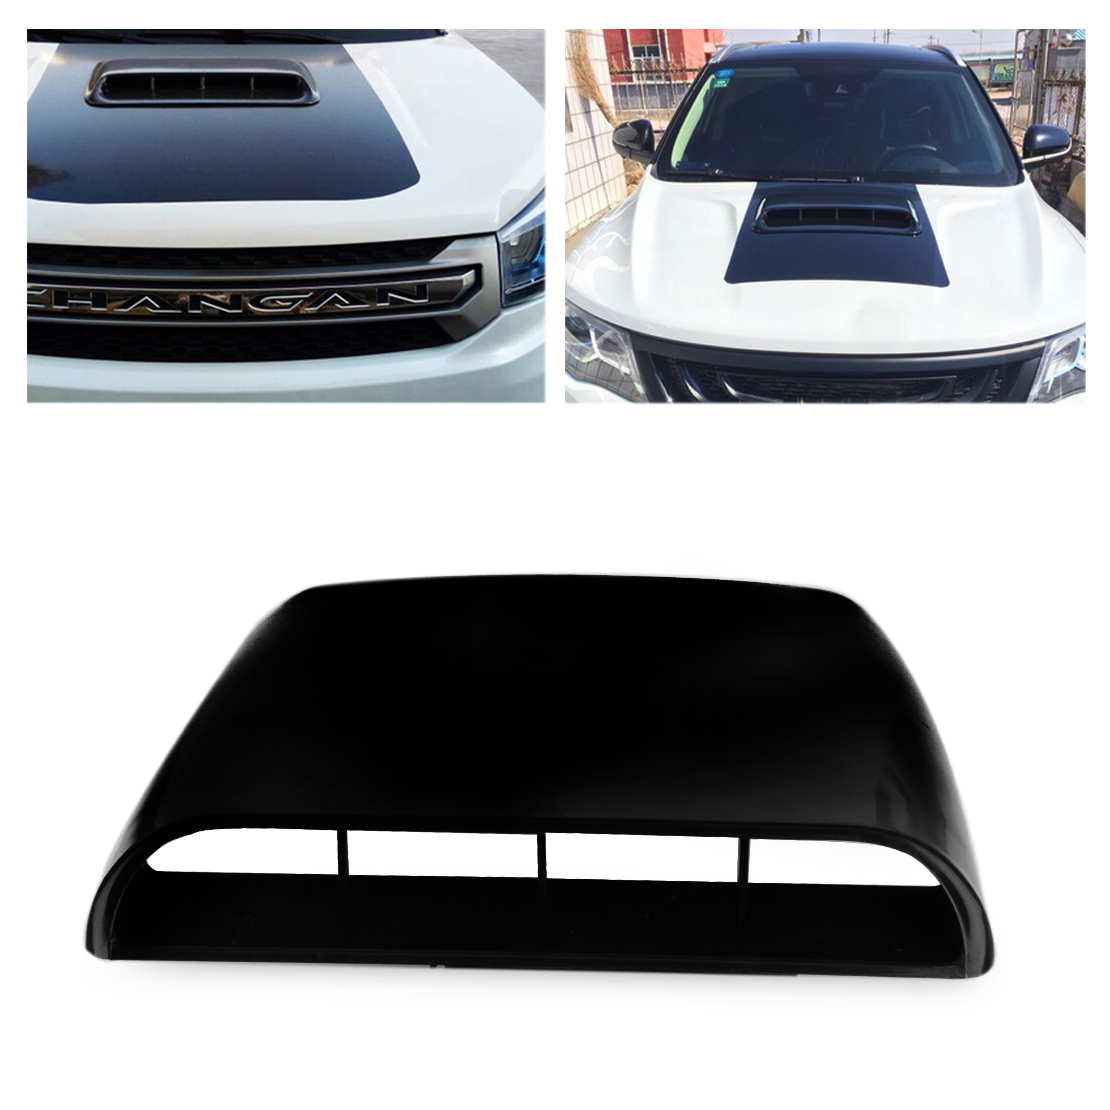 CITALL Car-styling Universal Air Flow Intake Hood Scoop Vent Bonnet Decorative Cover Decal Black / White / Grey ob 515 universal air flow vent hood covers for car silver pair